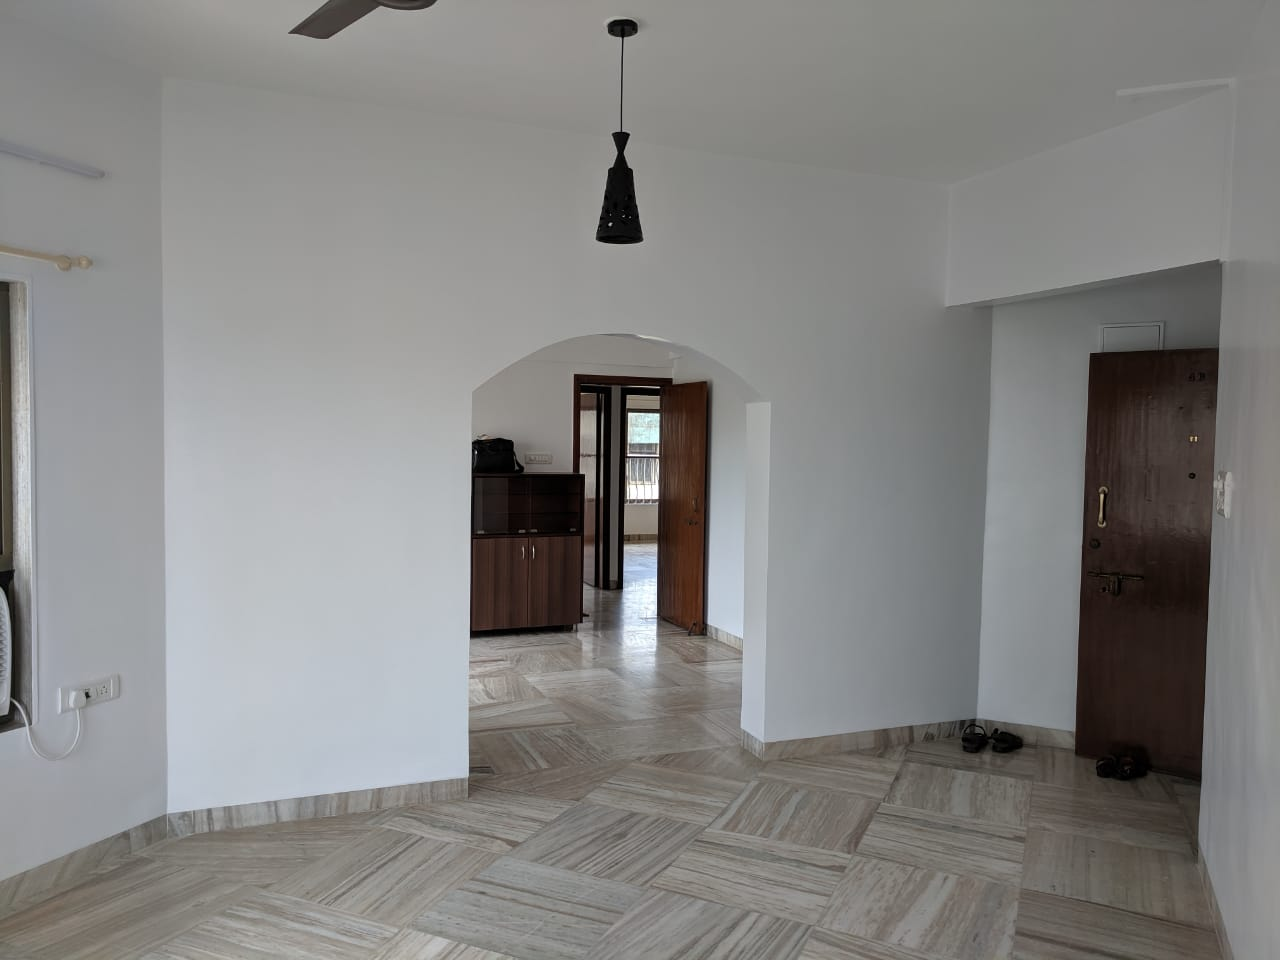 2 Bhk for Rent in Worli Seaface @ 1 Lac